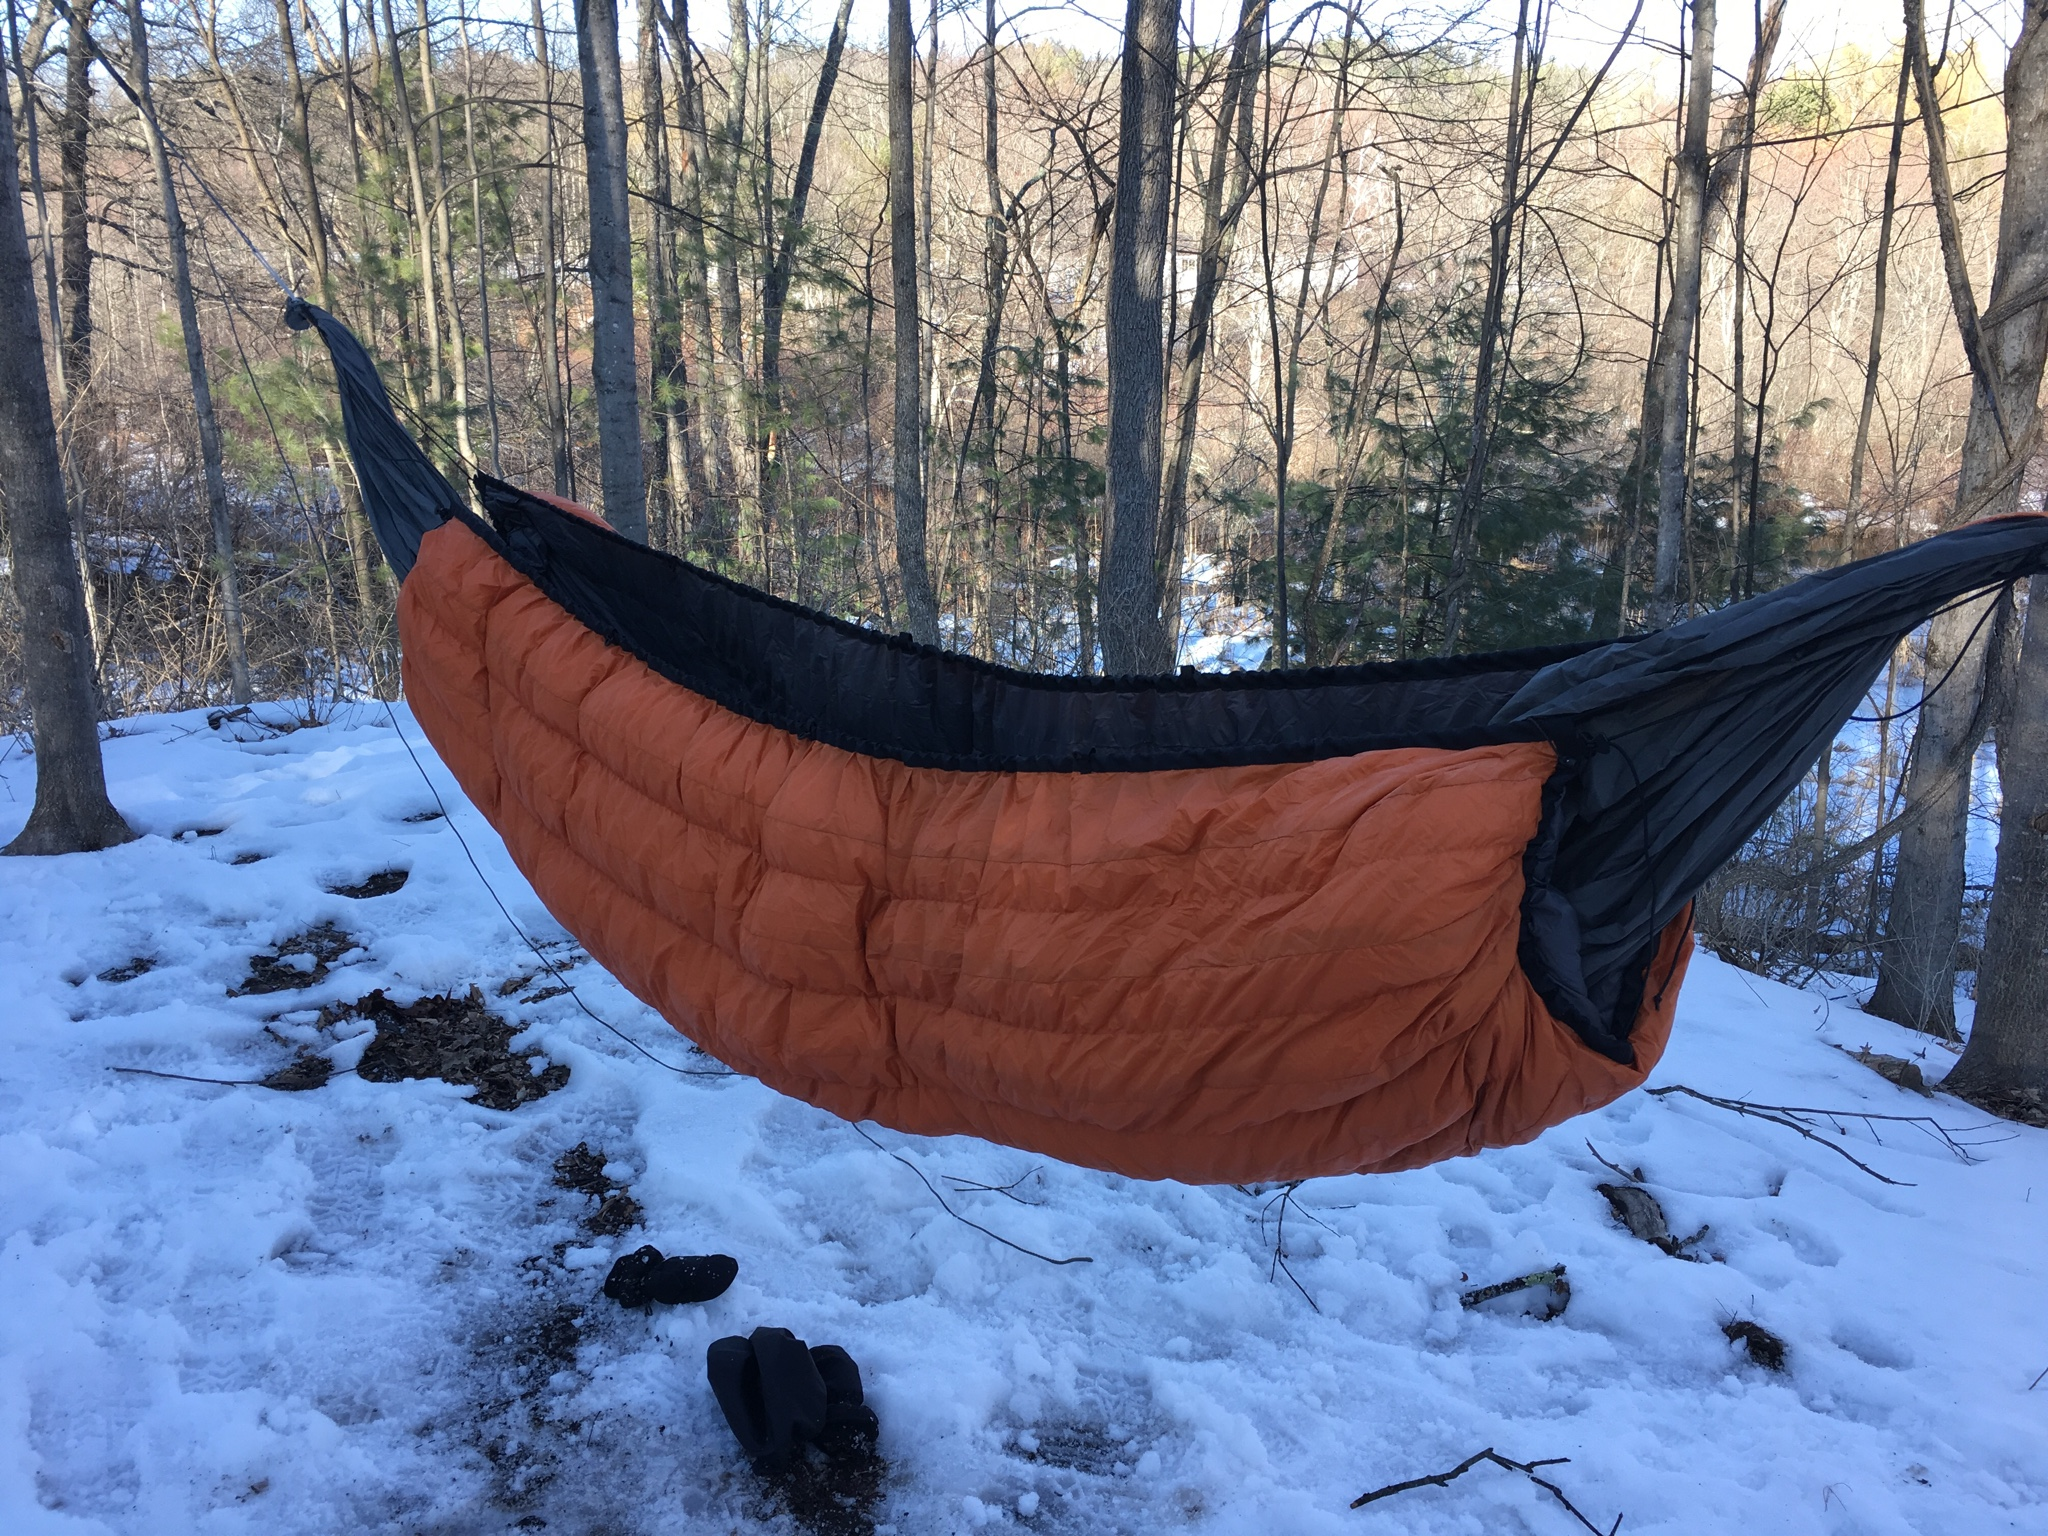 don u0027t see how this is an economy quilt but i u0027ll take it  sloppy hammock hang but too excited to try it out economy incubator    page 13  rh   hammockforums